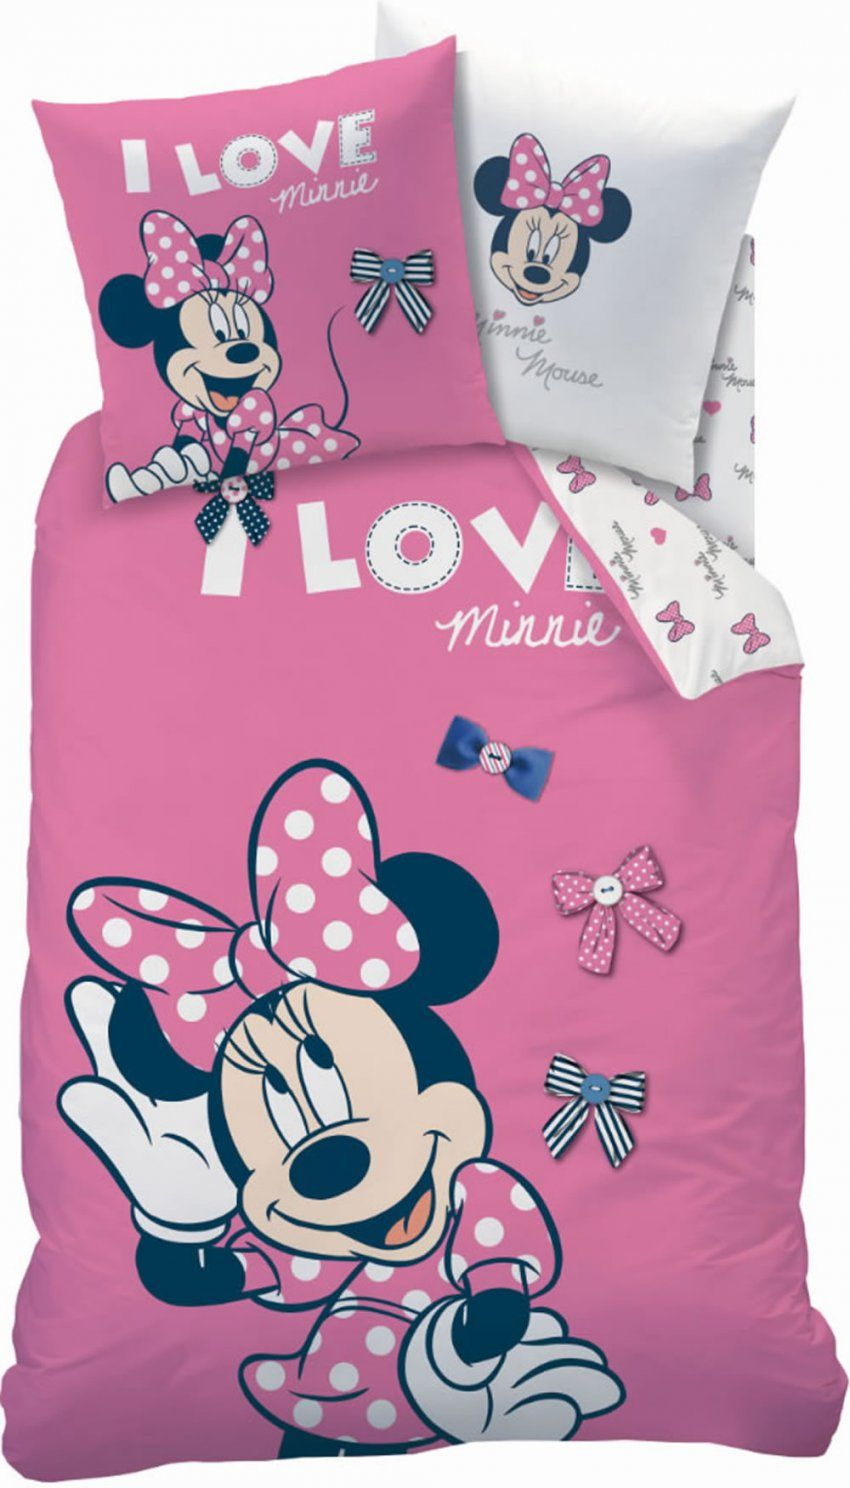 Disney Minnie Mouse Flanellbettwäsche Stylish Rose Bei Papiton von Mini Mouse Bettwäsche Photo